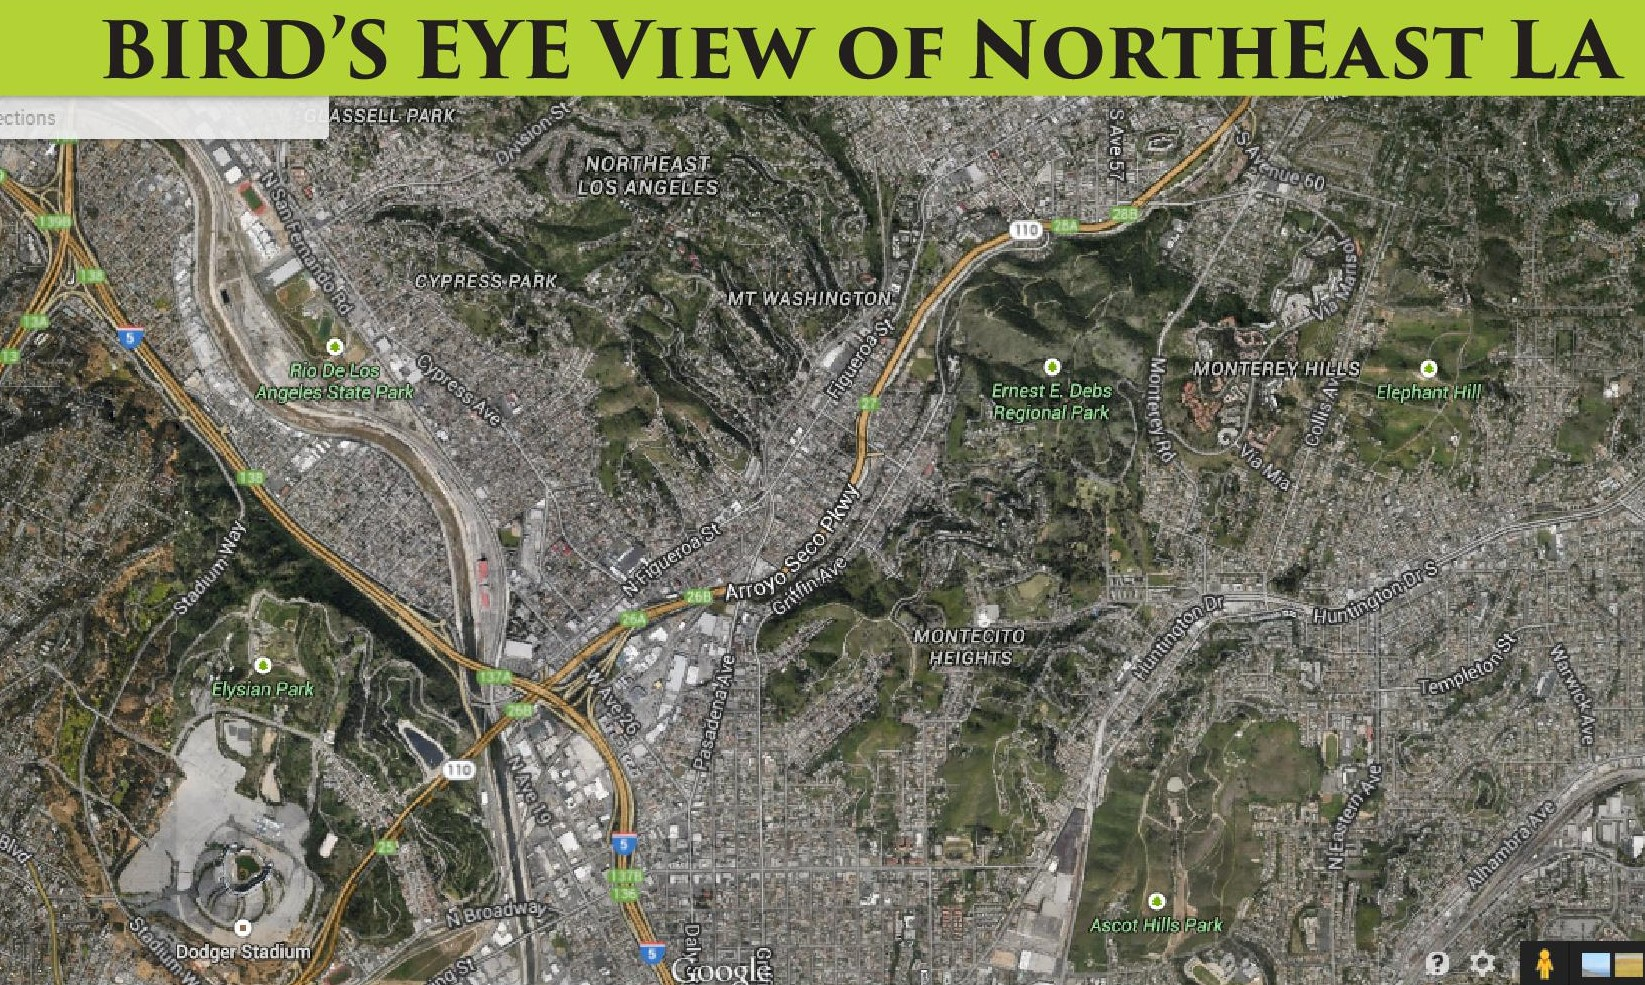 North_East_LA_Birds_Eye.jpg